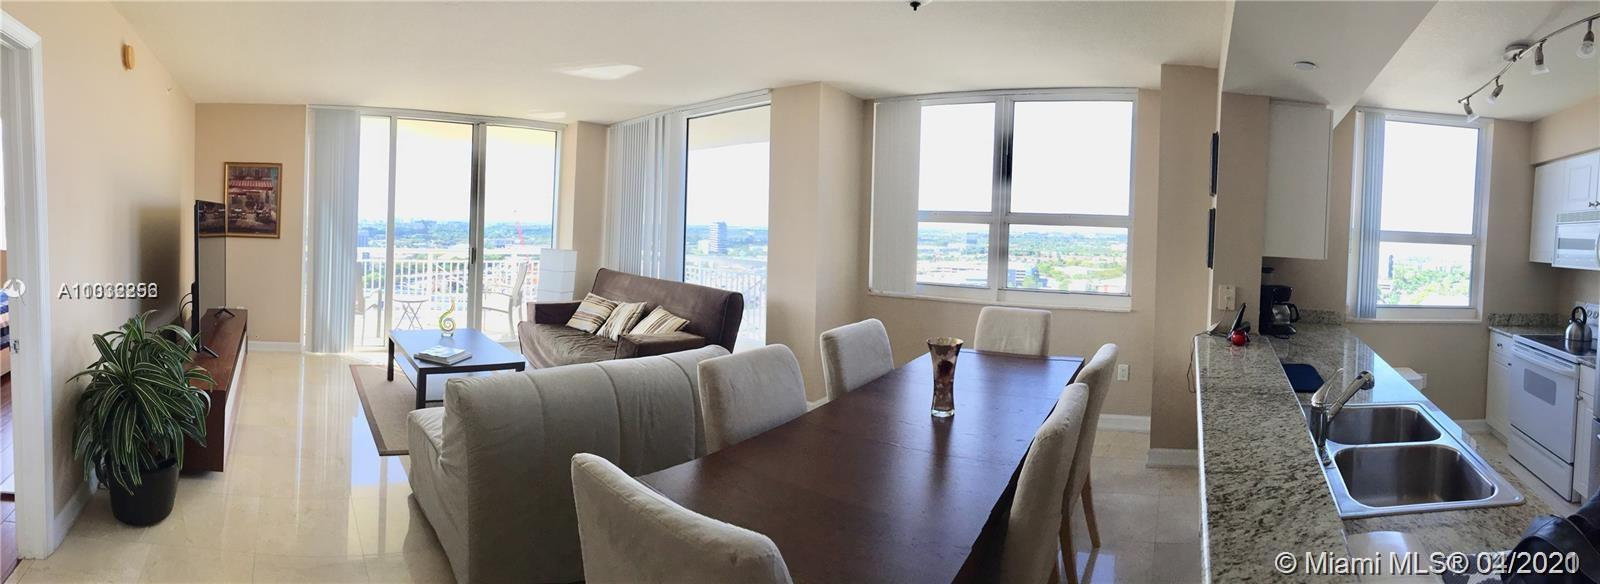 TURN KEY- Corner unit 2 Br 2 Baths- Fully Furnished high floor condo with wraparound balcony. Turnbe